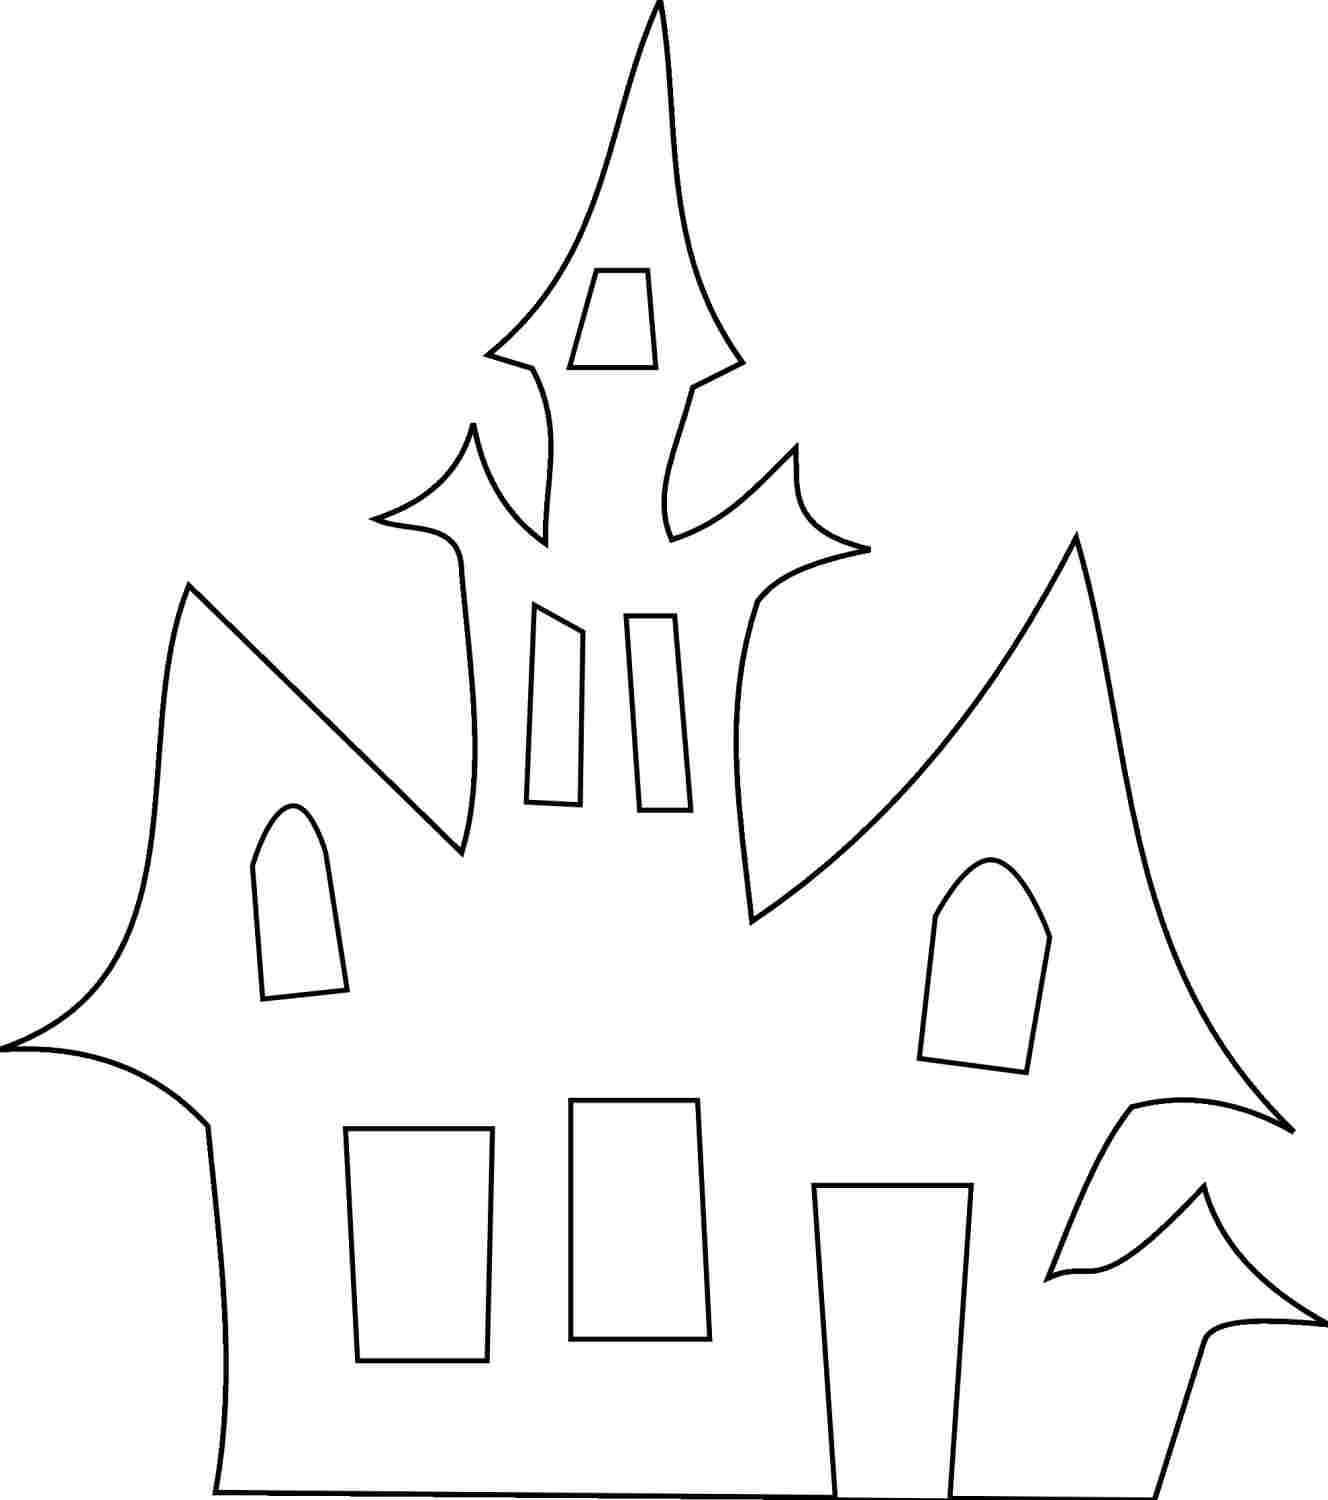 Haunted house pattern for Halloween. Use the printable outline for